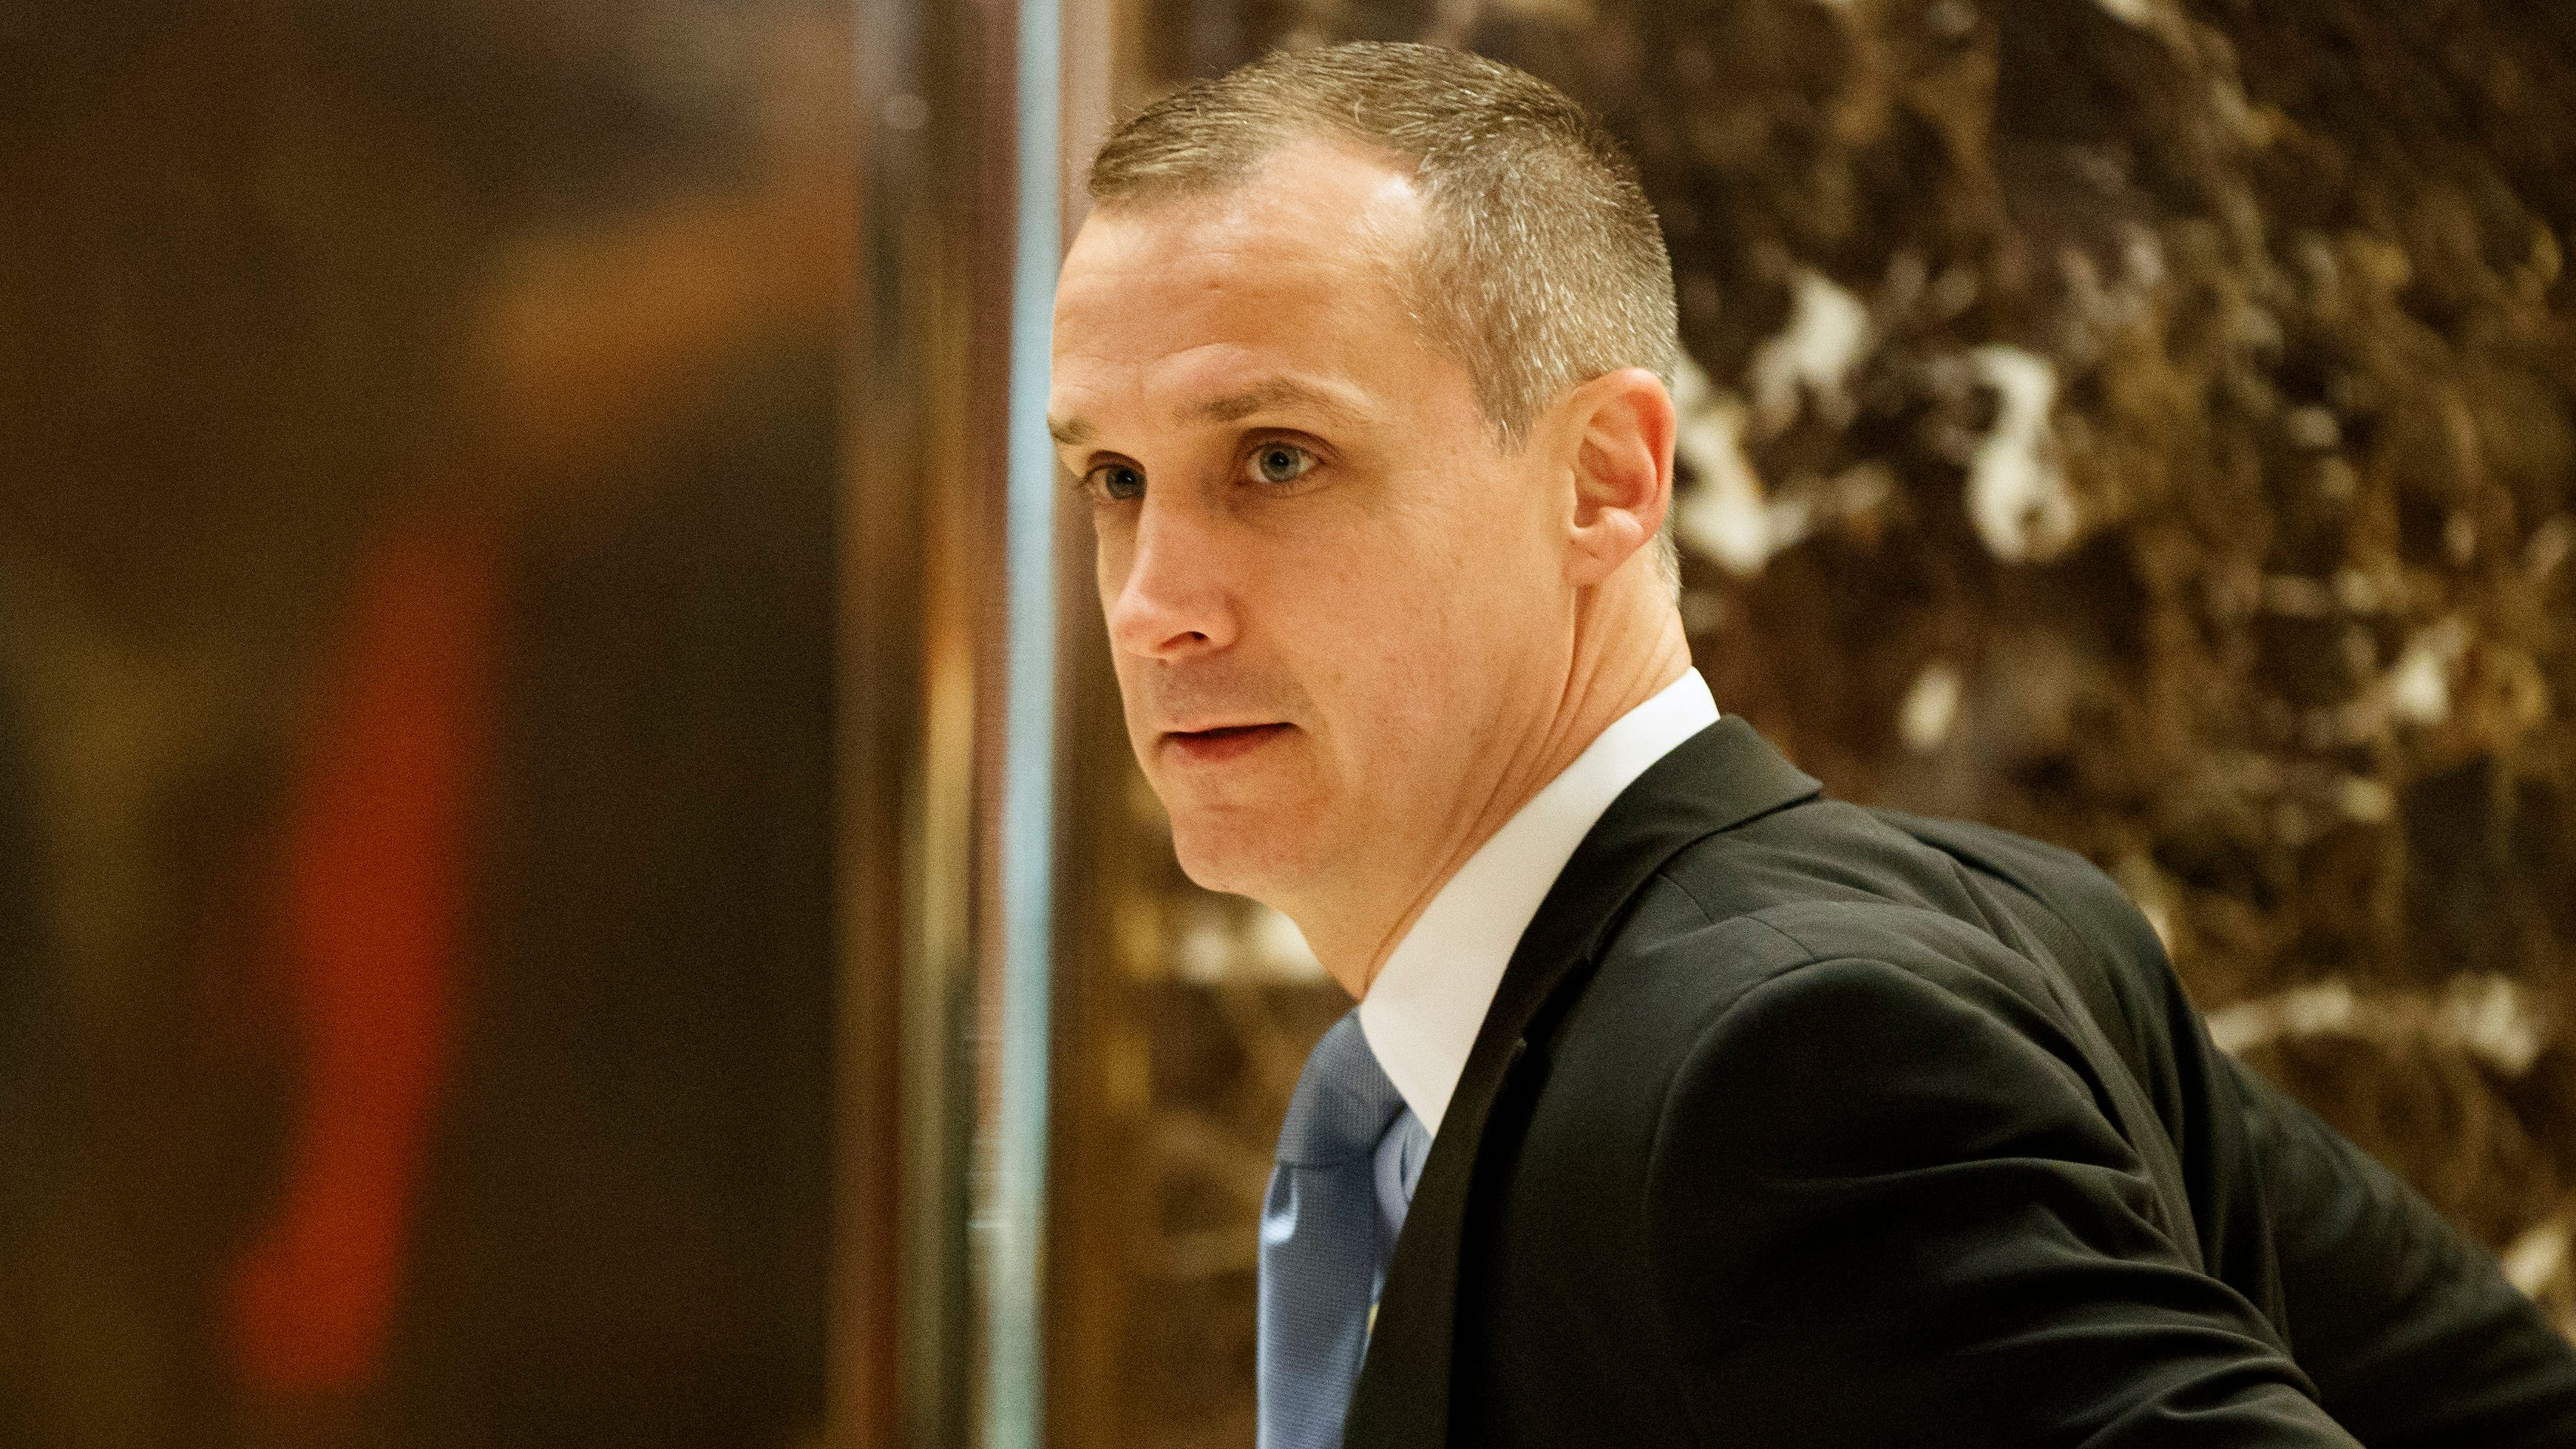 Corey Lewandowski, former campaign manager for President Donald Trump, at Trump Tower, on Nov. 29, 2016, in New York.